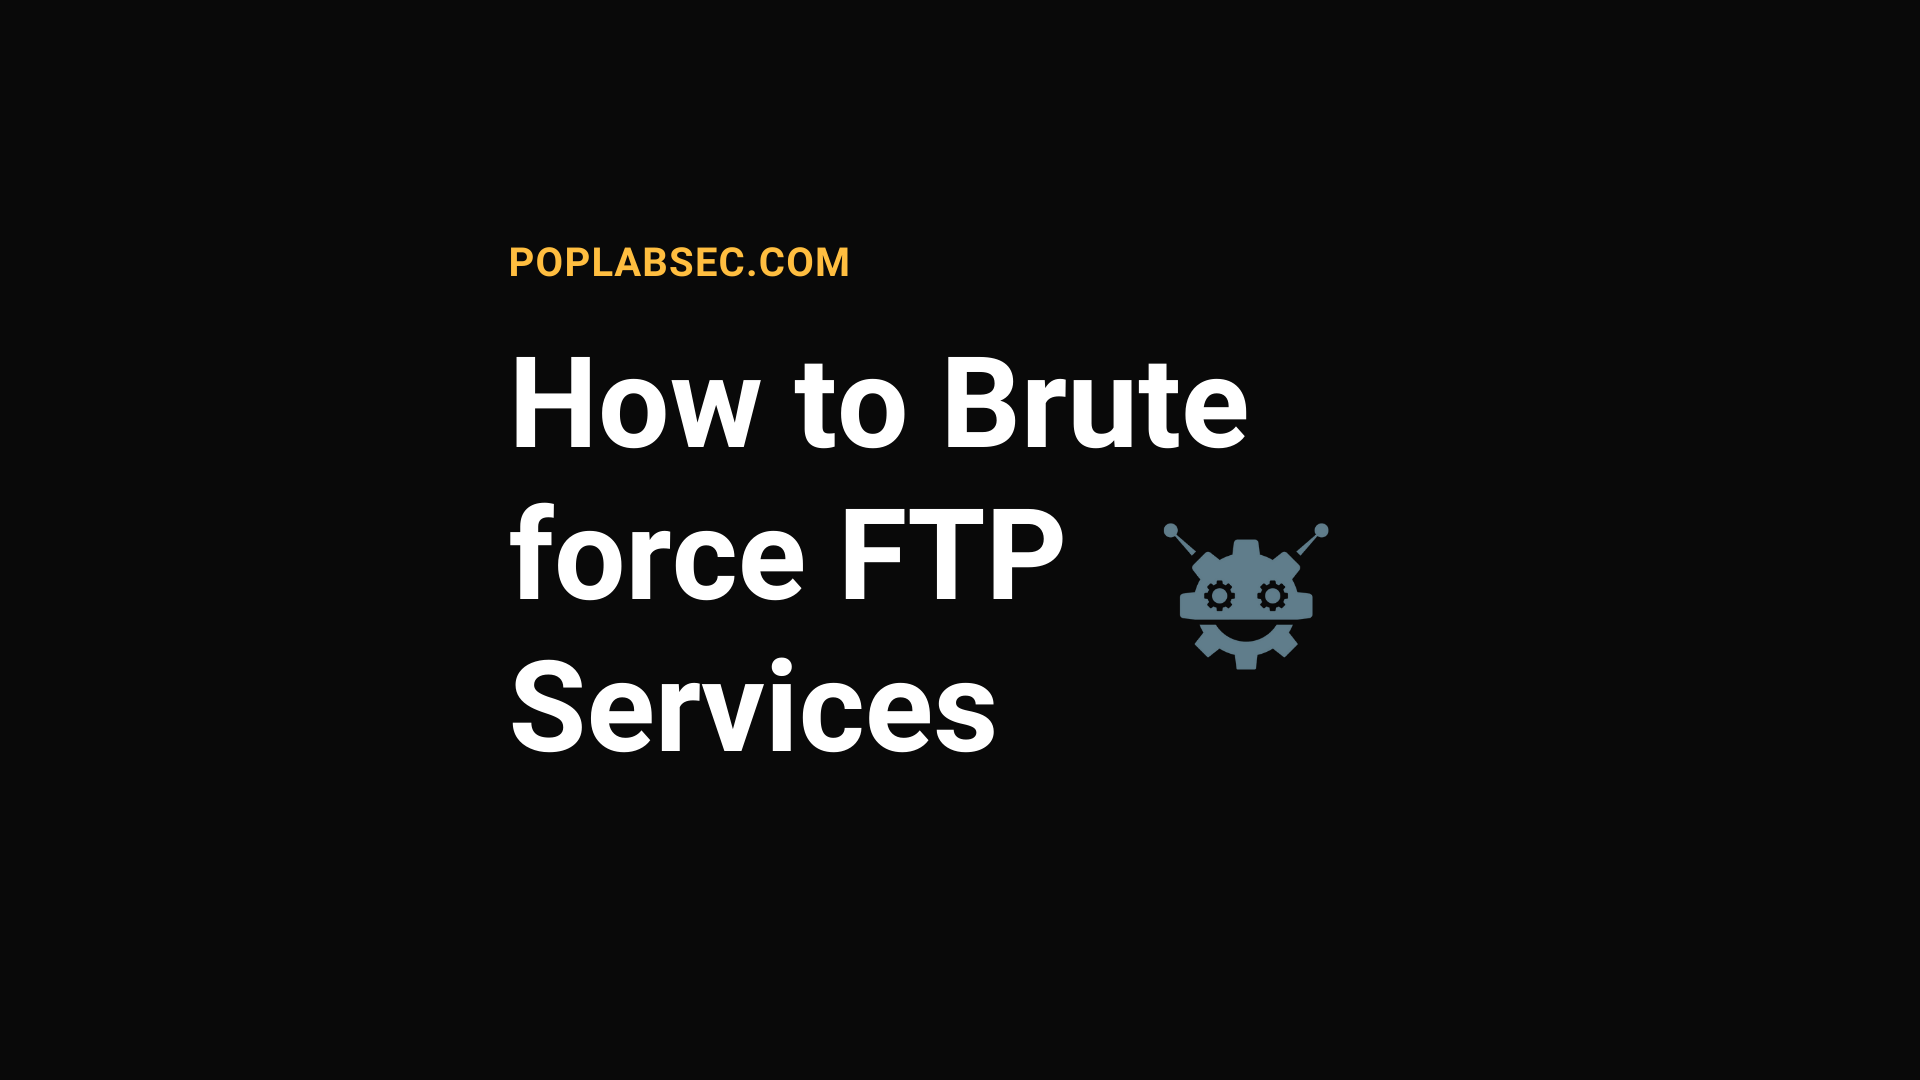 How to Brute force FTP Services